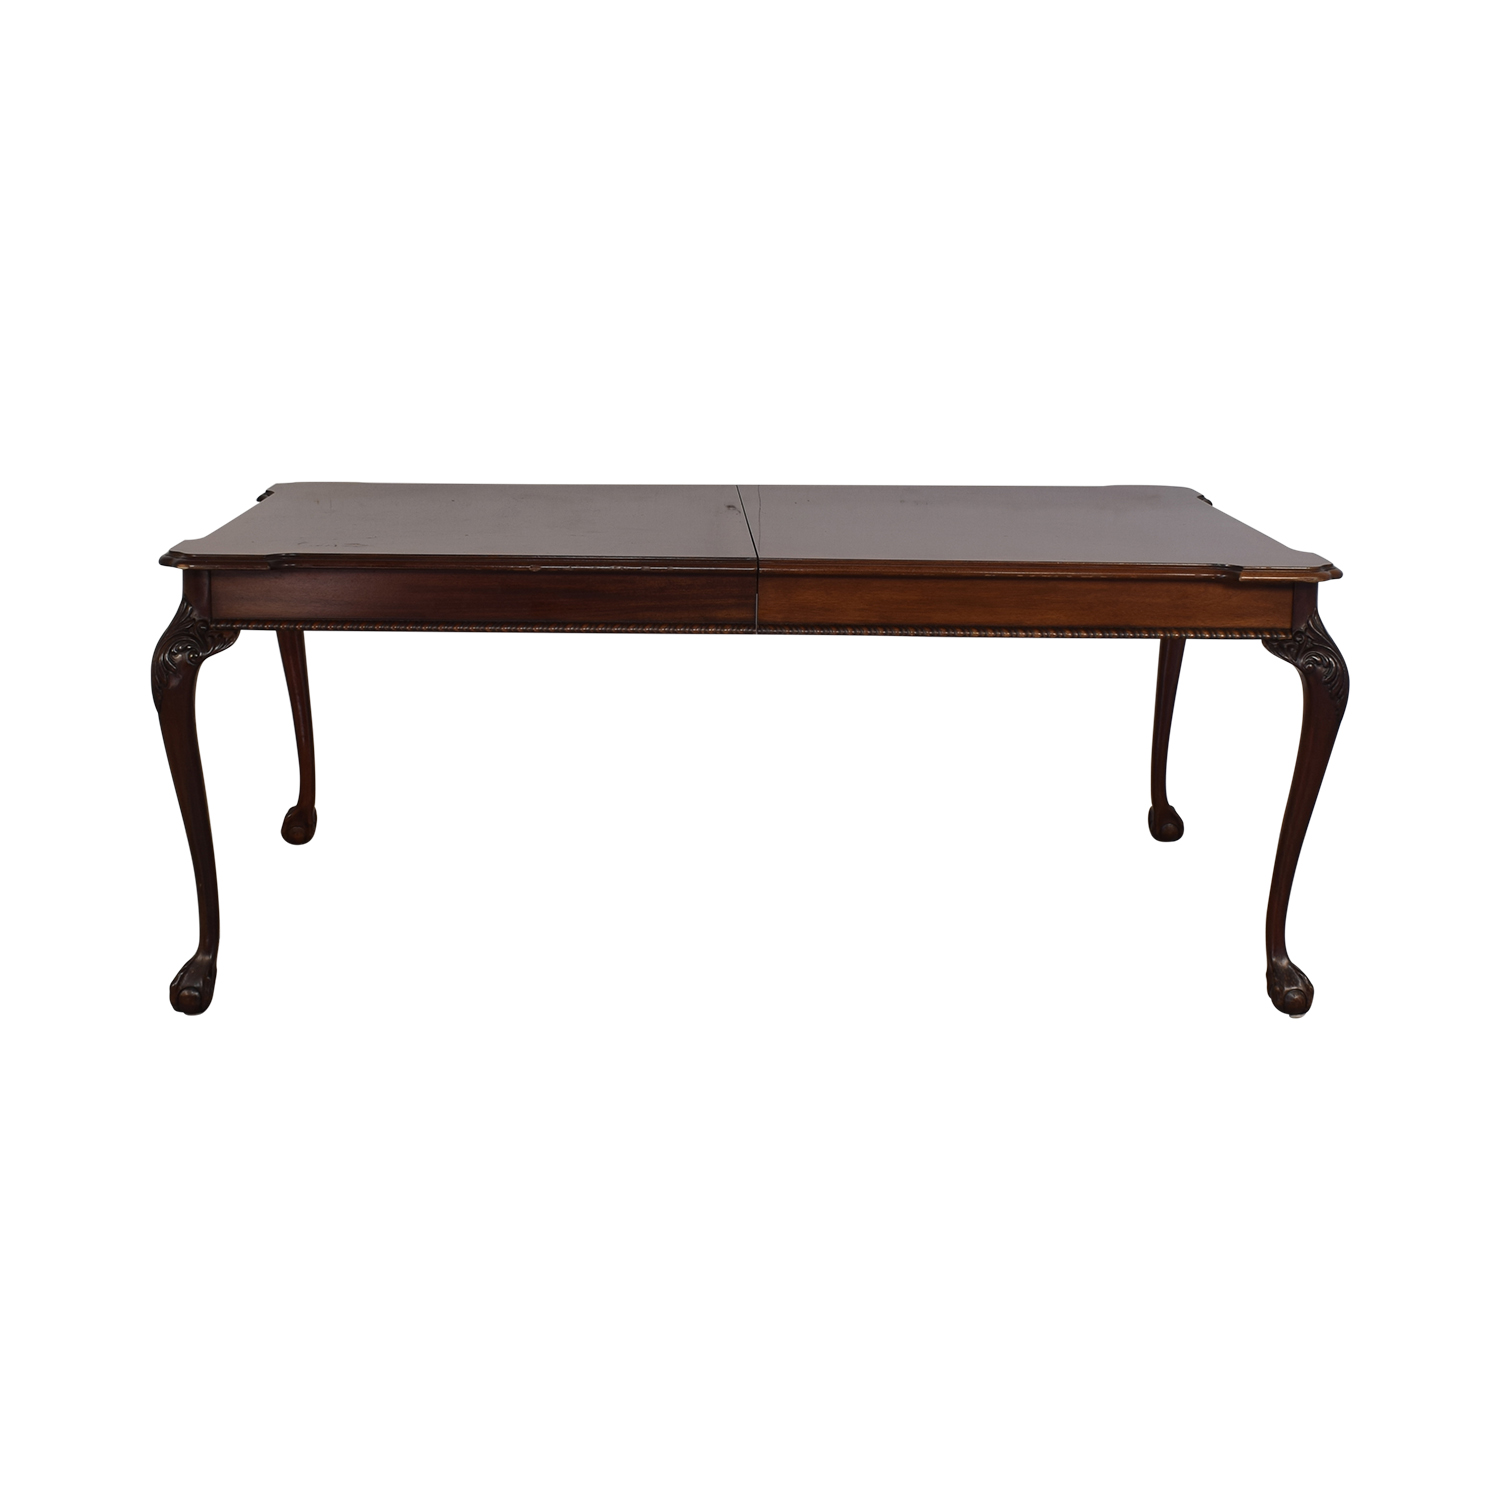 Lexington Furniture Lexington Dining Table brown